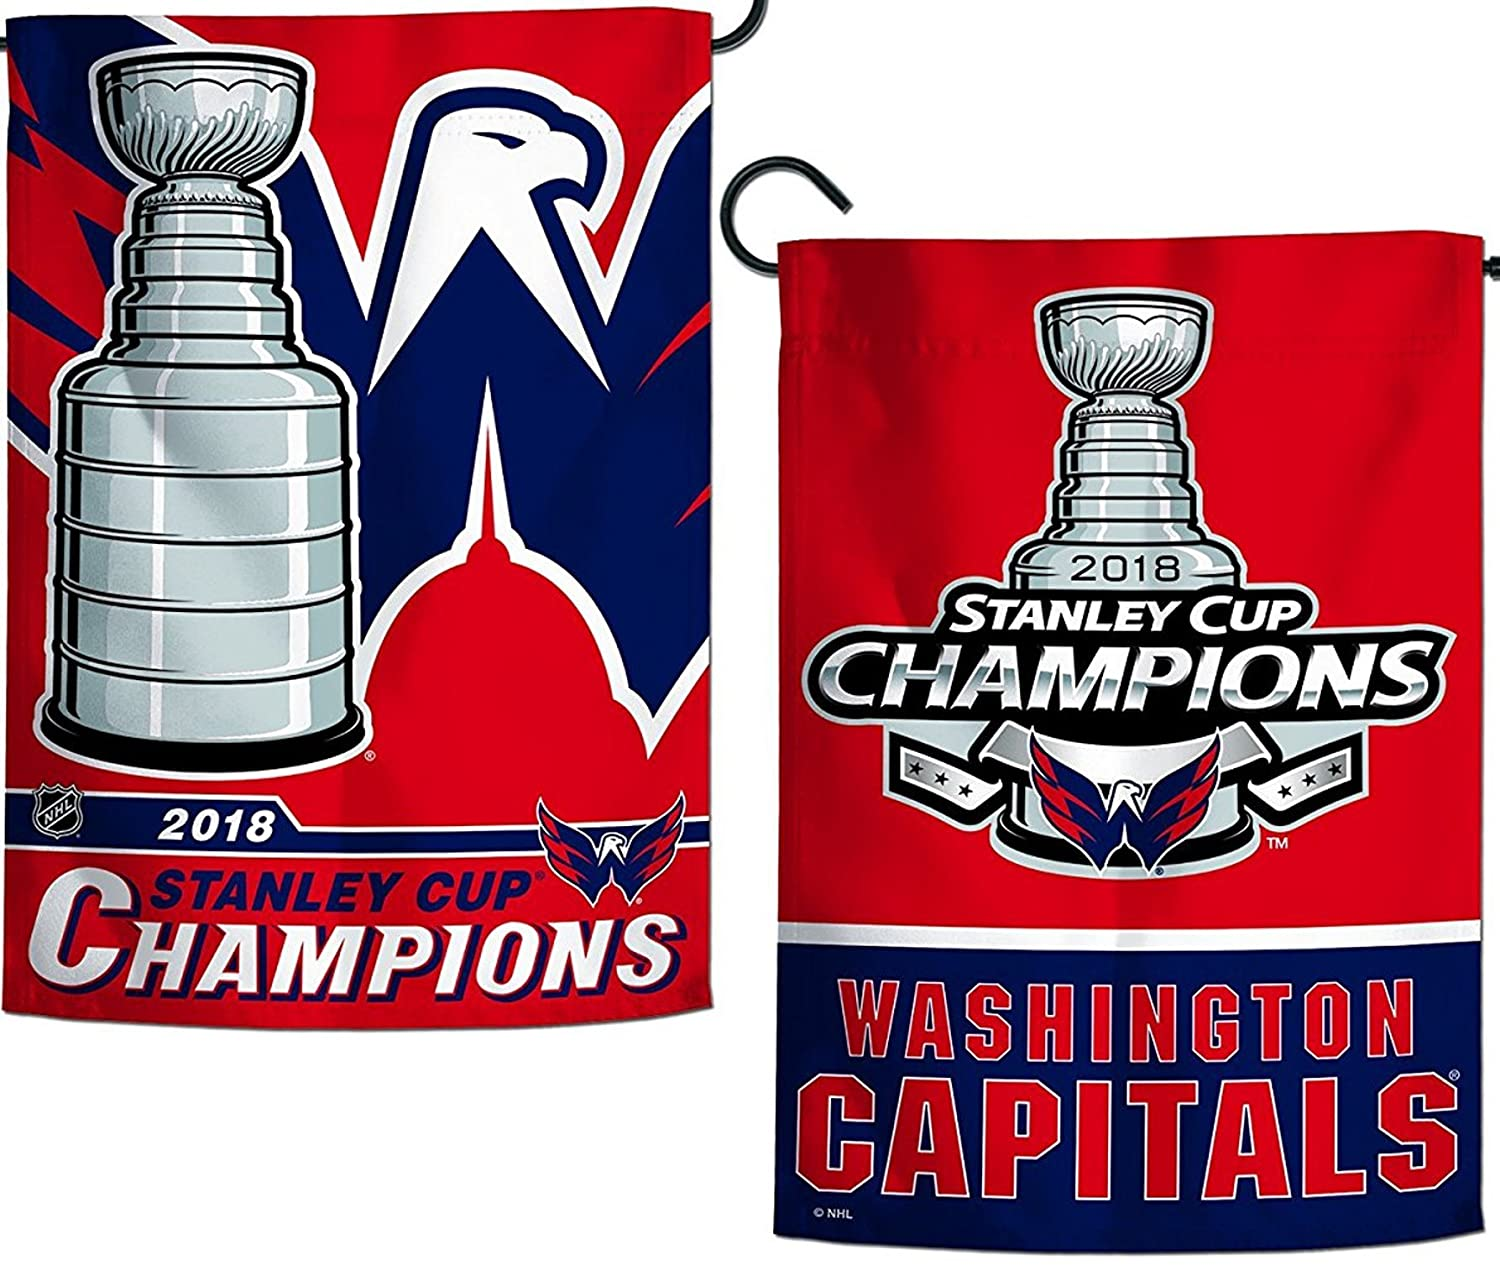 Amazon.com  Washington Capitals 2018 Champions GARDEN Flag Premium 2-sided  Banner Stanley Cup Hockey  Sports   Outdoors 9b6194d967d7